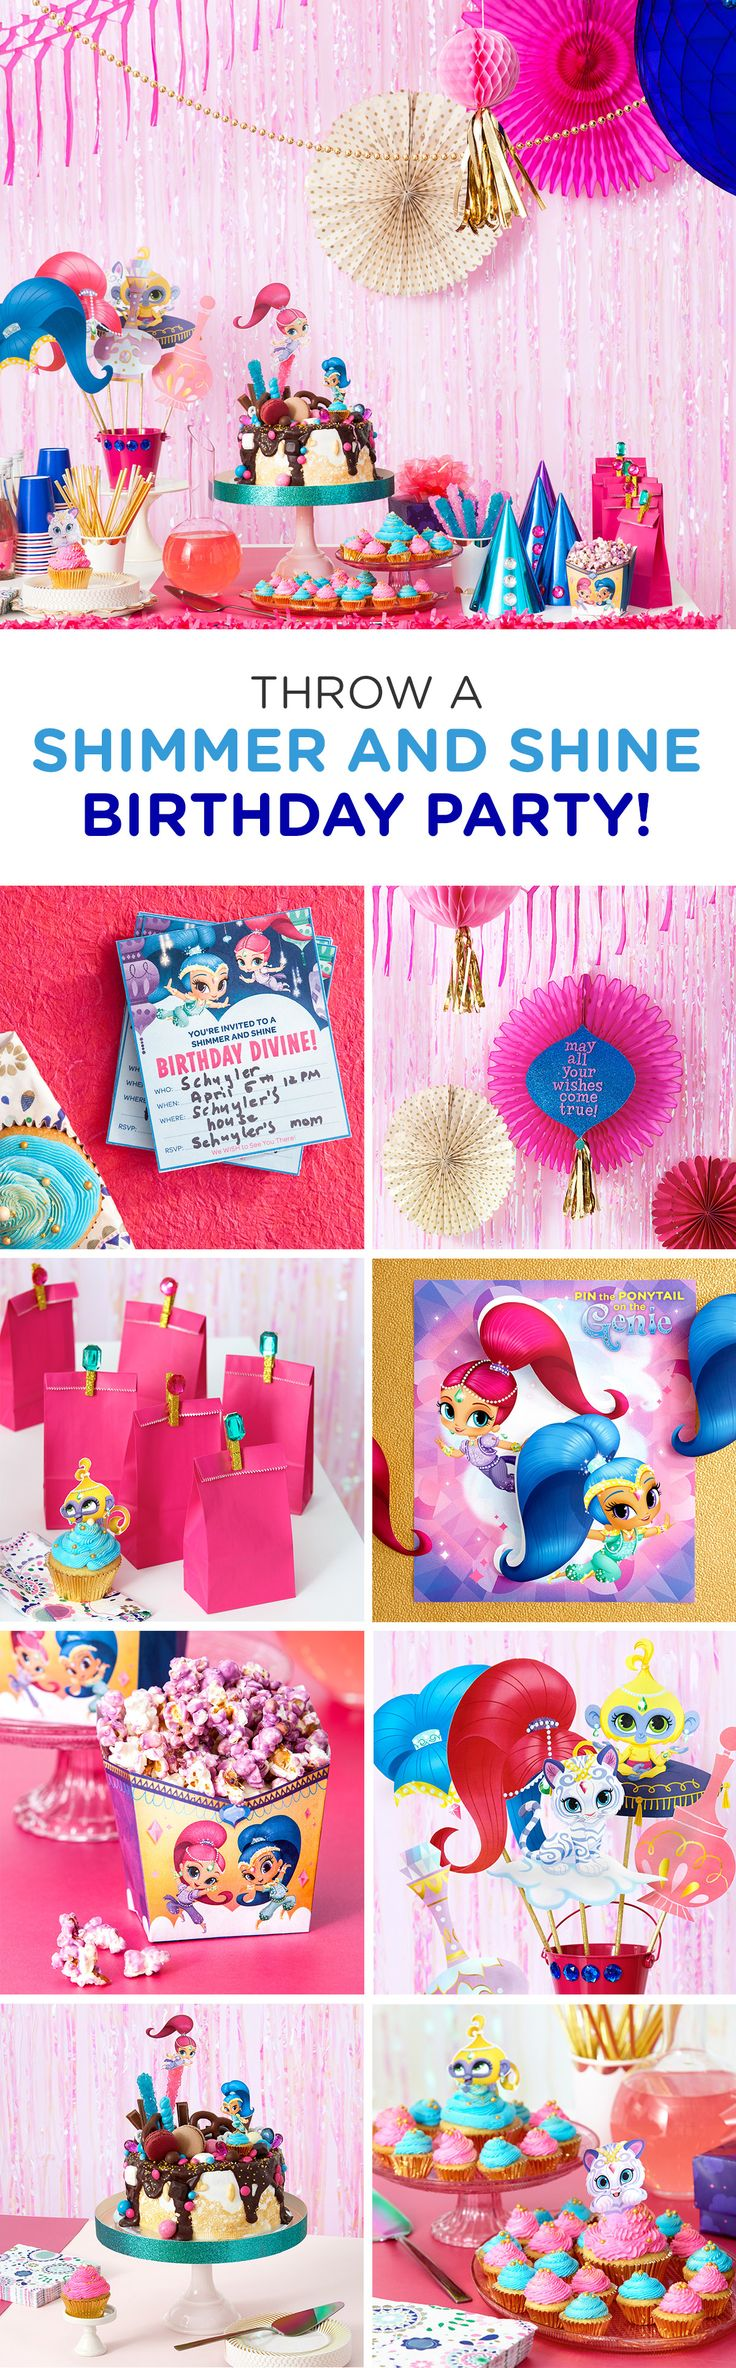 98 best shimmer shine printables images on pinterest for Shimmer and shine craft ideas